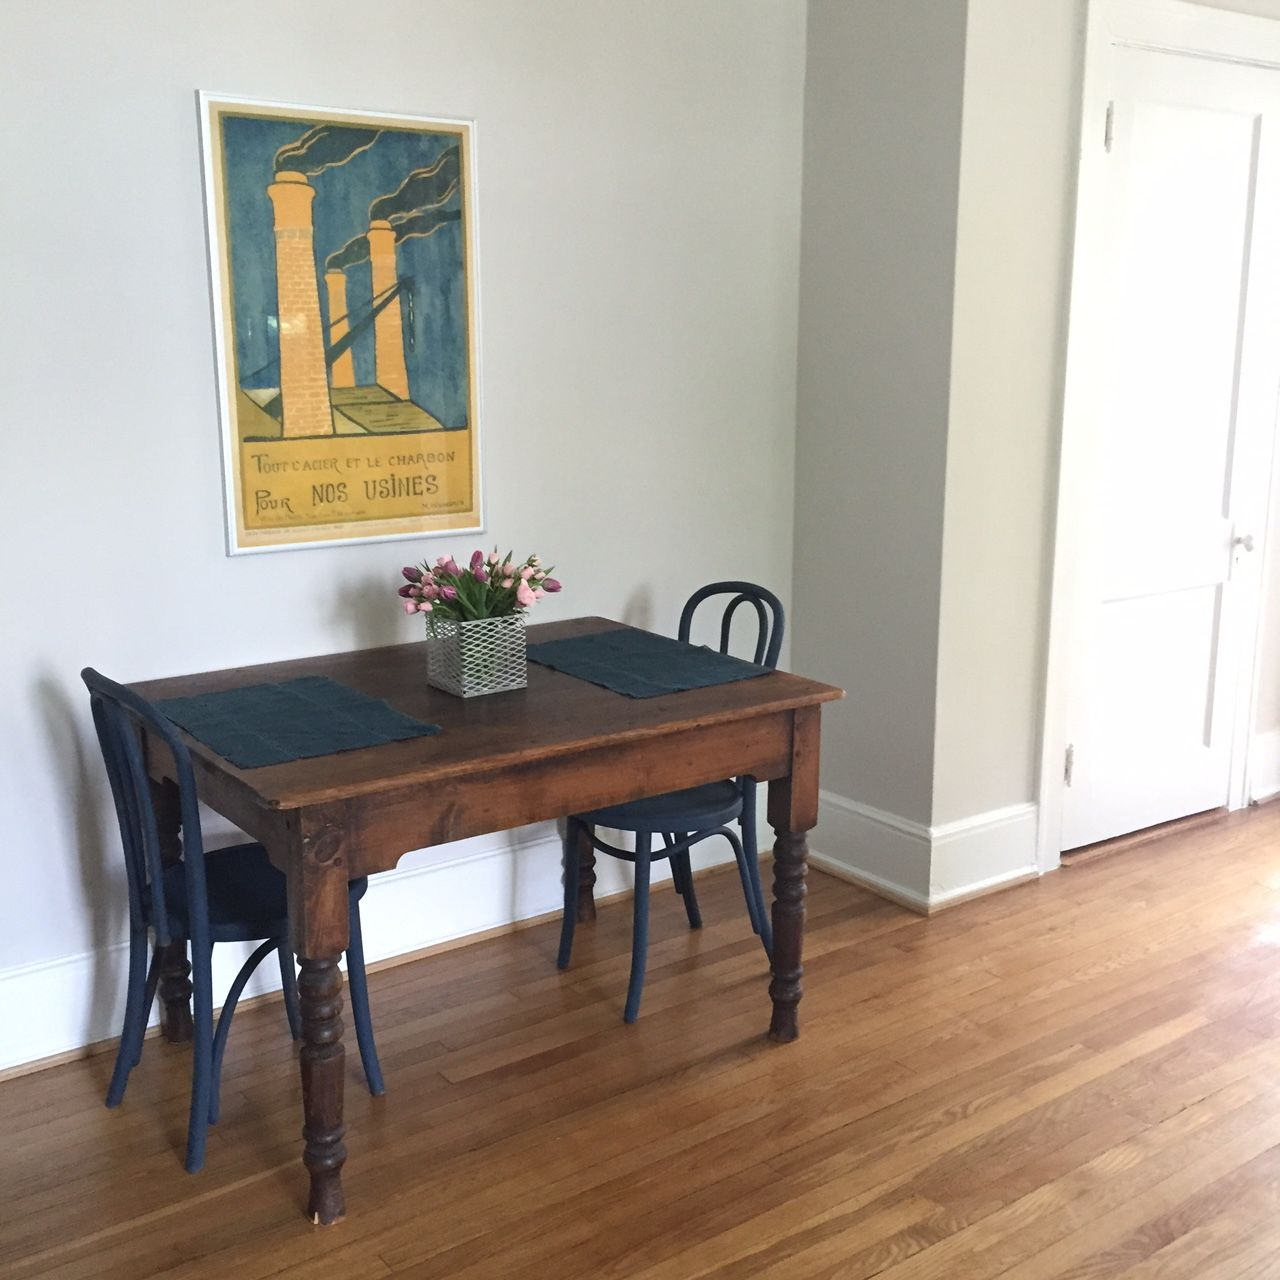 Home Staging Dining Room Table: Living / Dining Room Table (to Be Pushed Against Wall) In